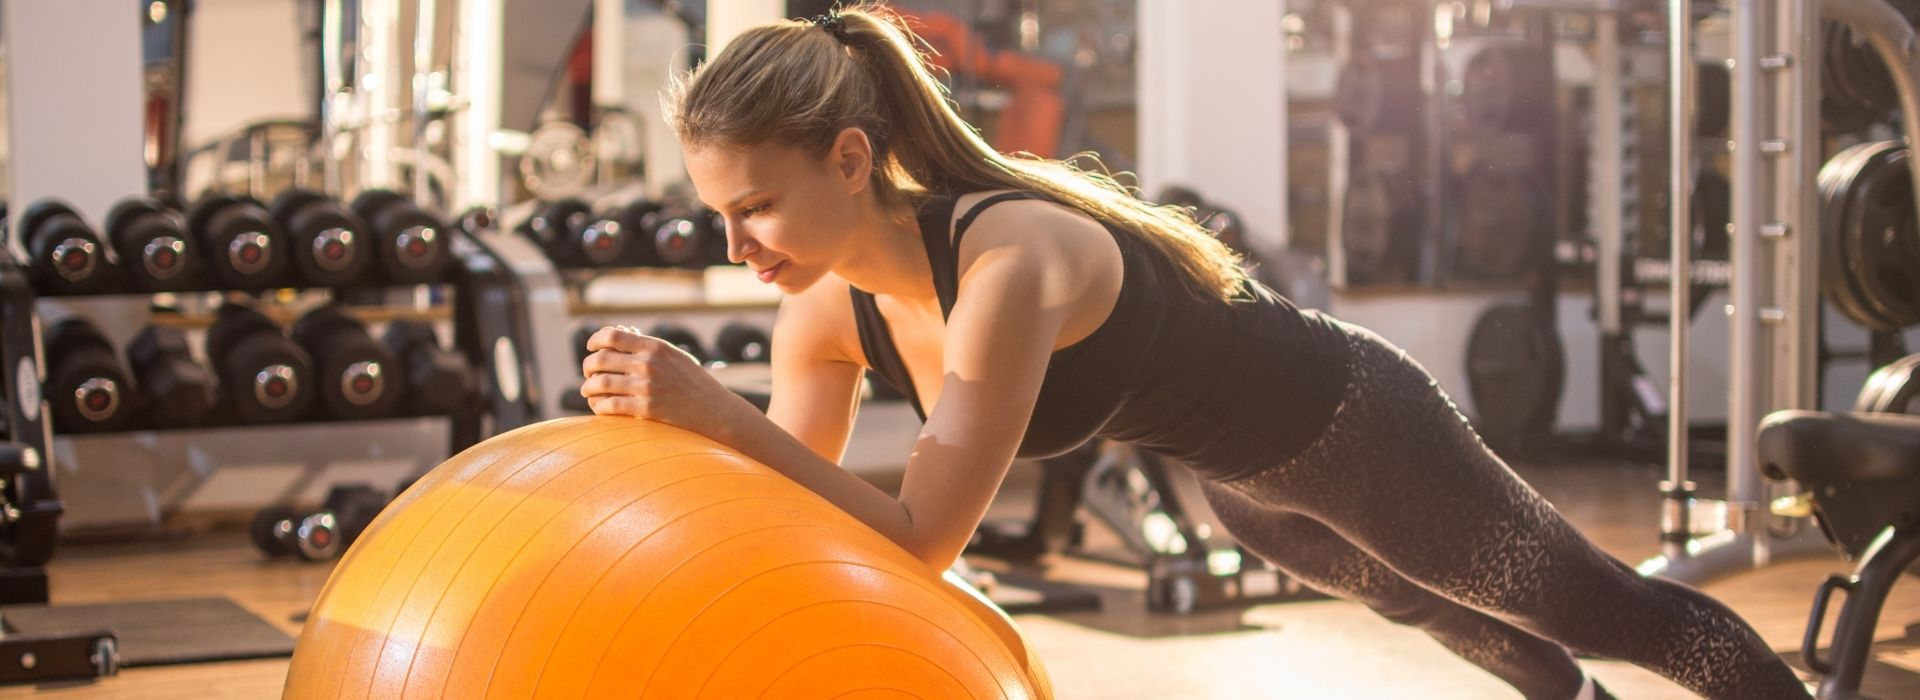 """Benefits of Using a """"Stability Ball"""" in Your Training"""